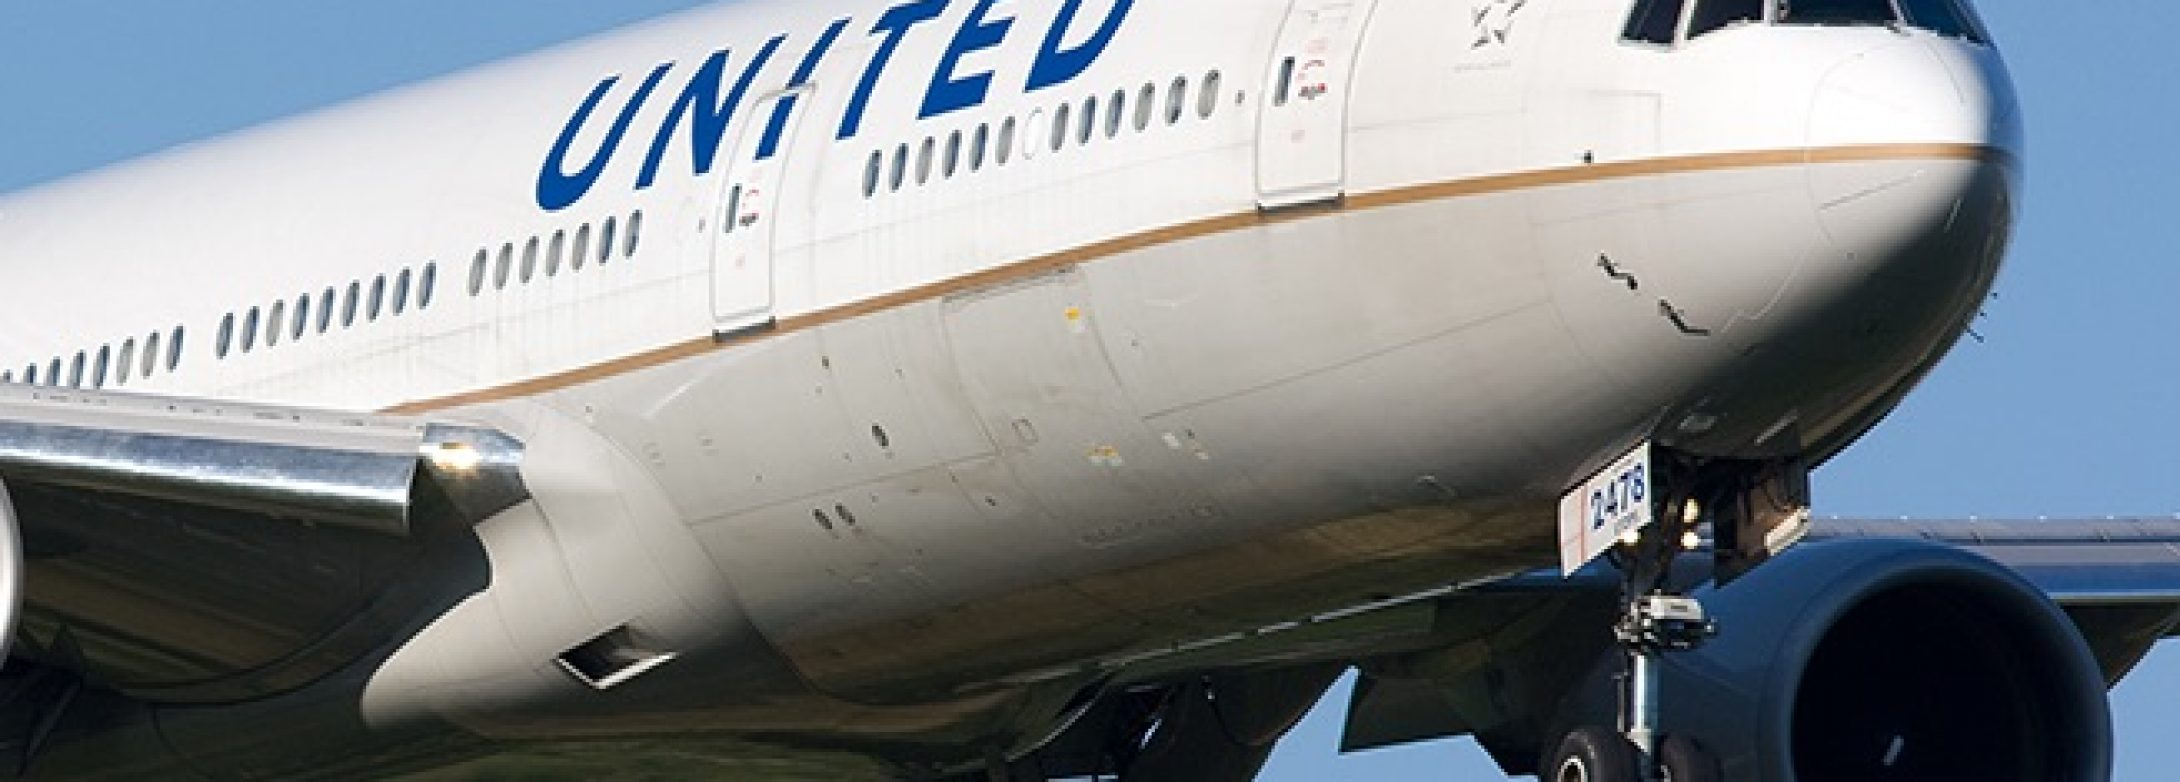 Crisis Management Lessons From United's Debacle